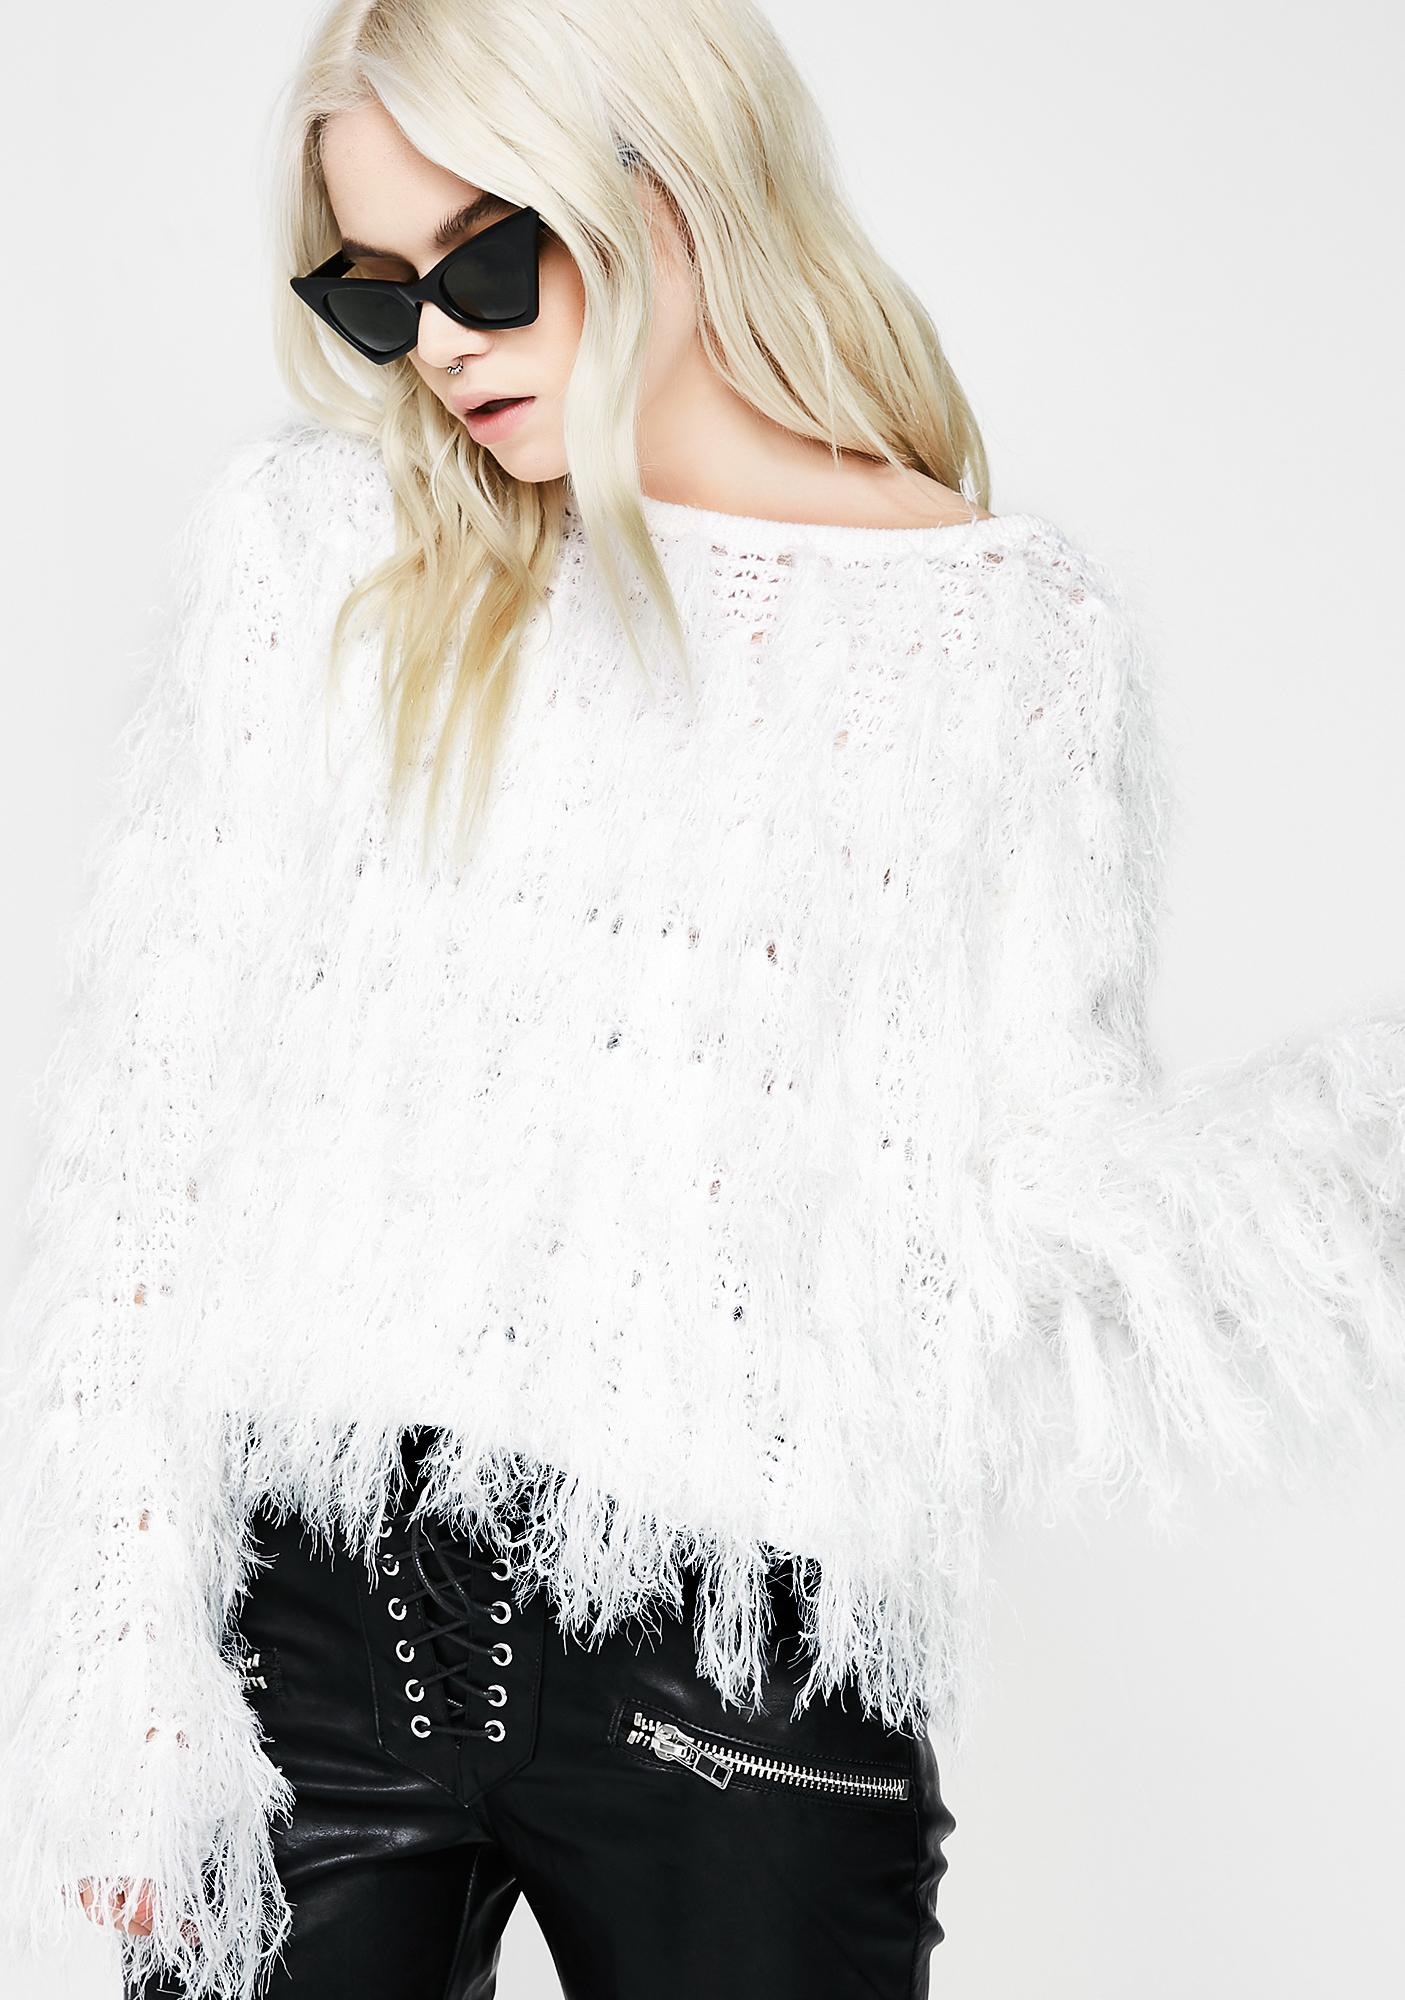 Champagne Powder Sweater